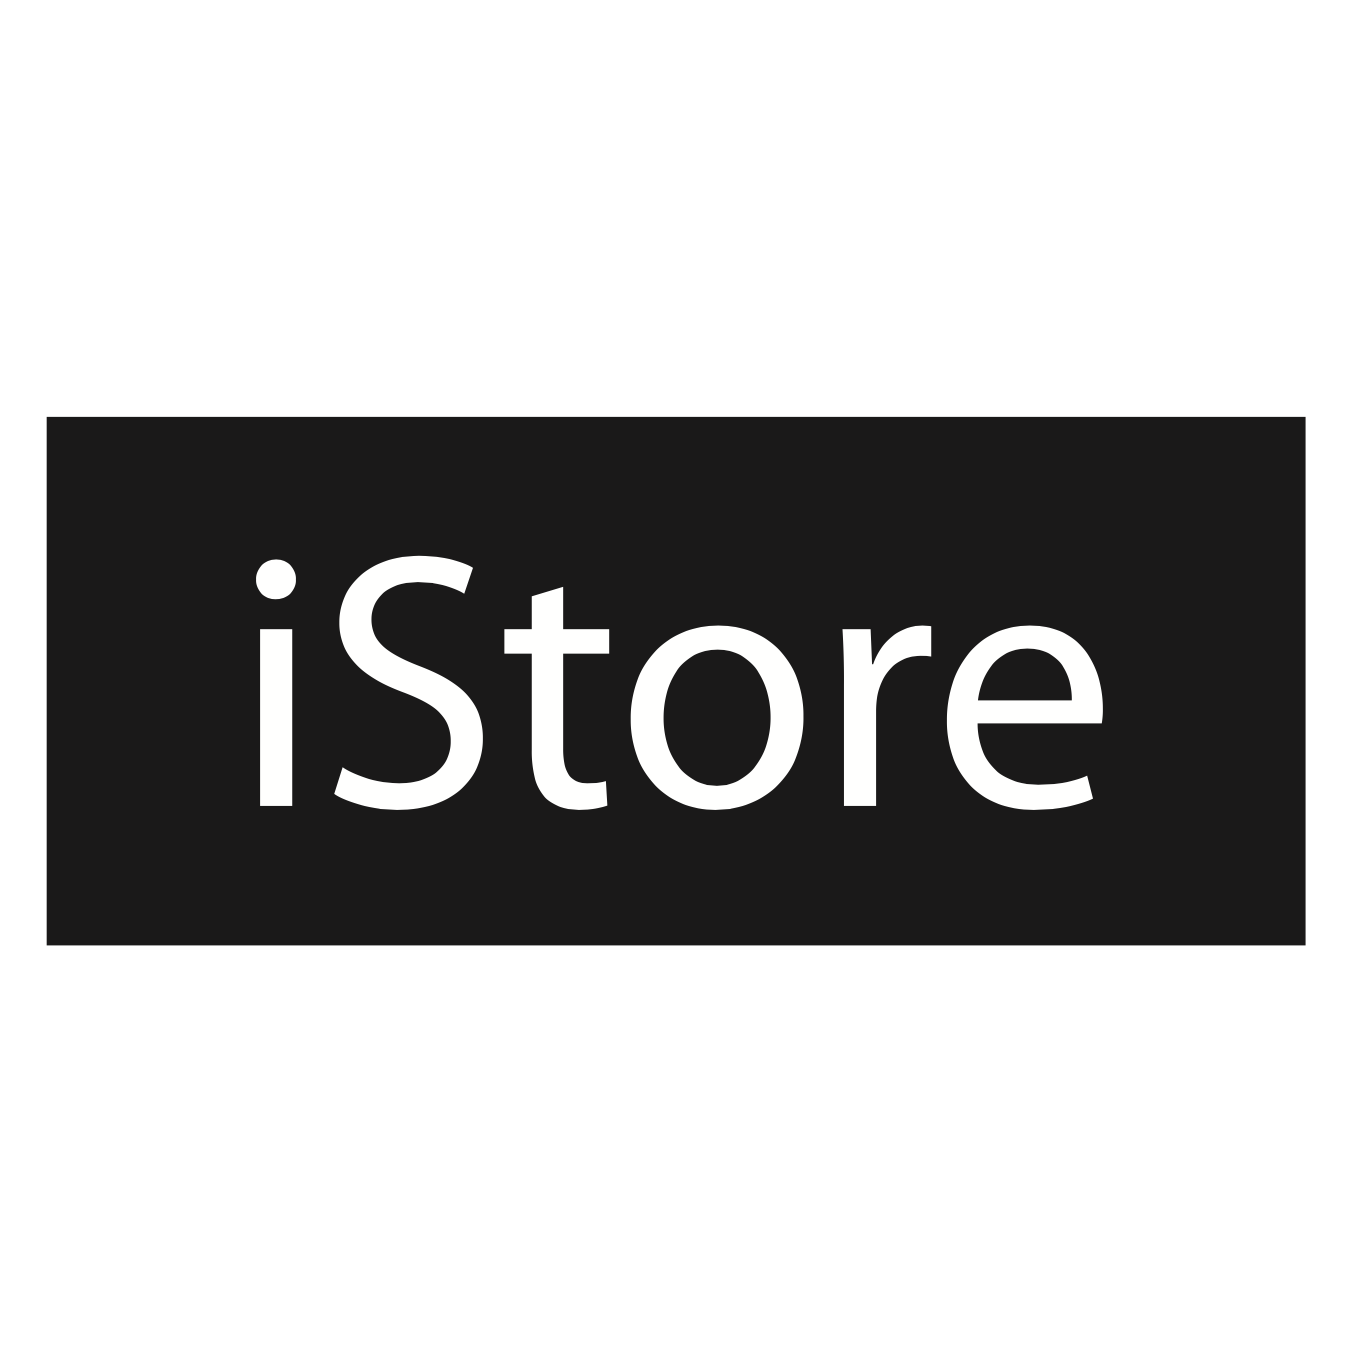 Share the love with a gift from iStore